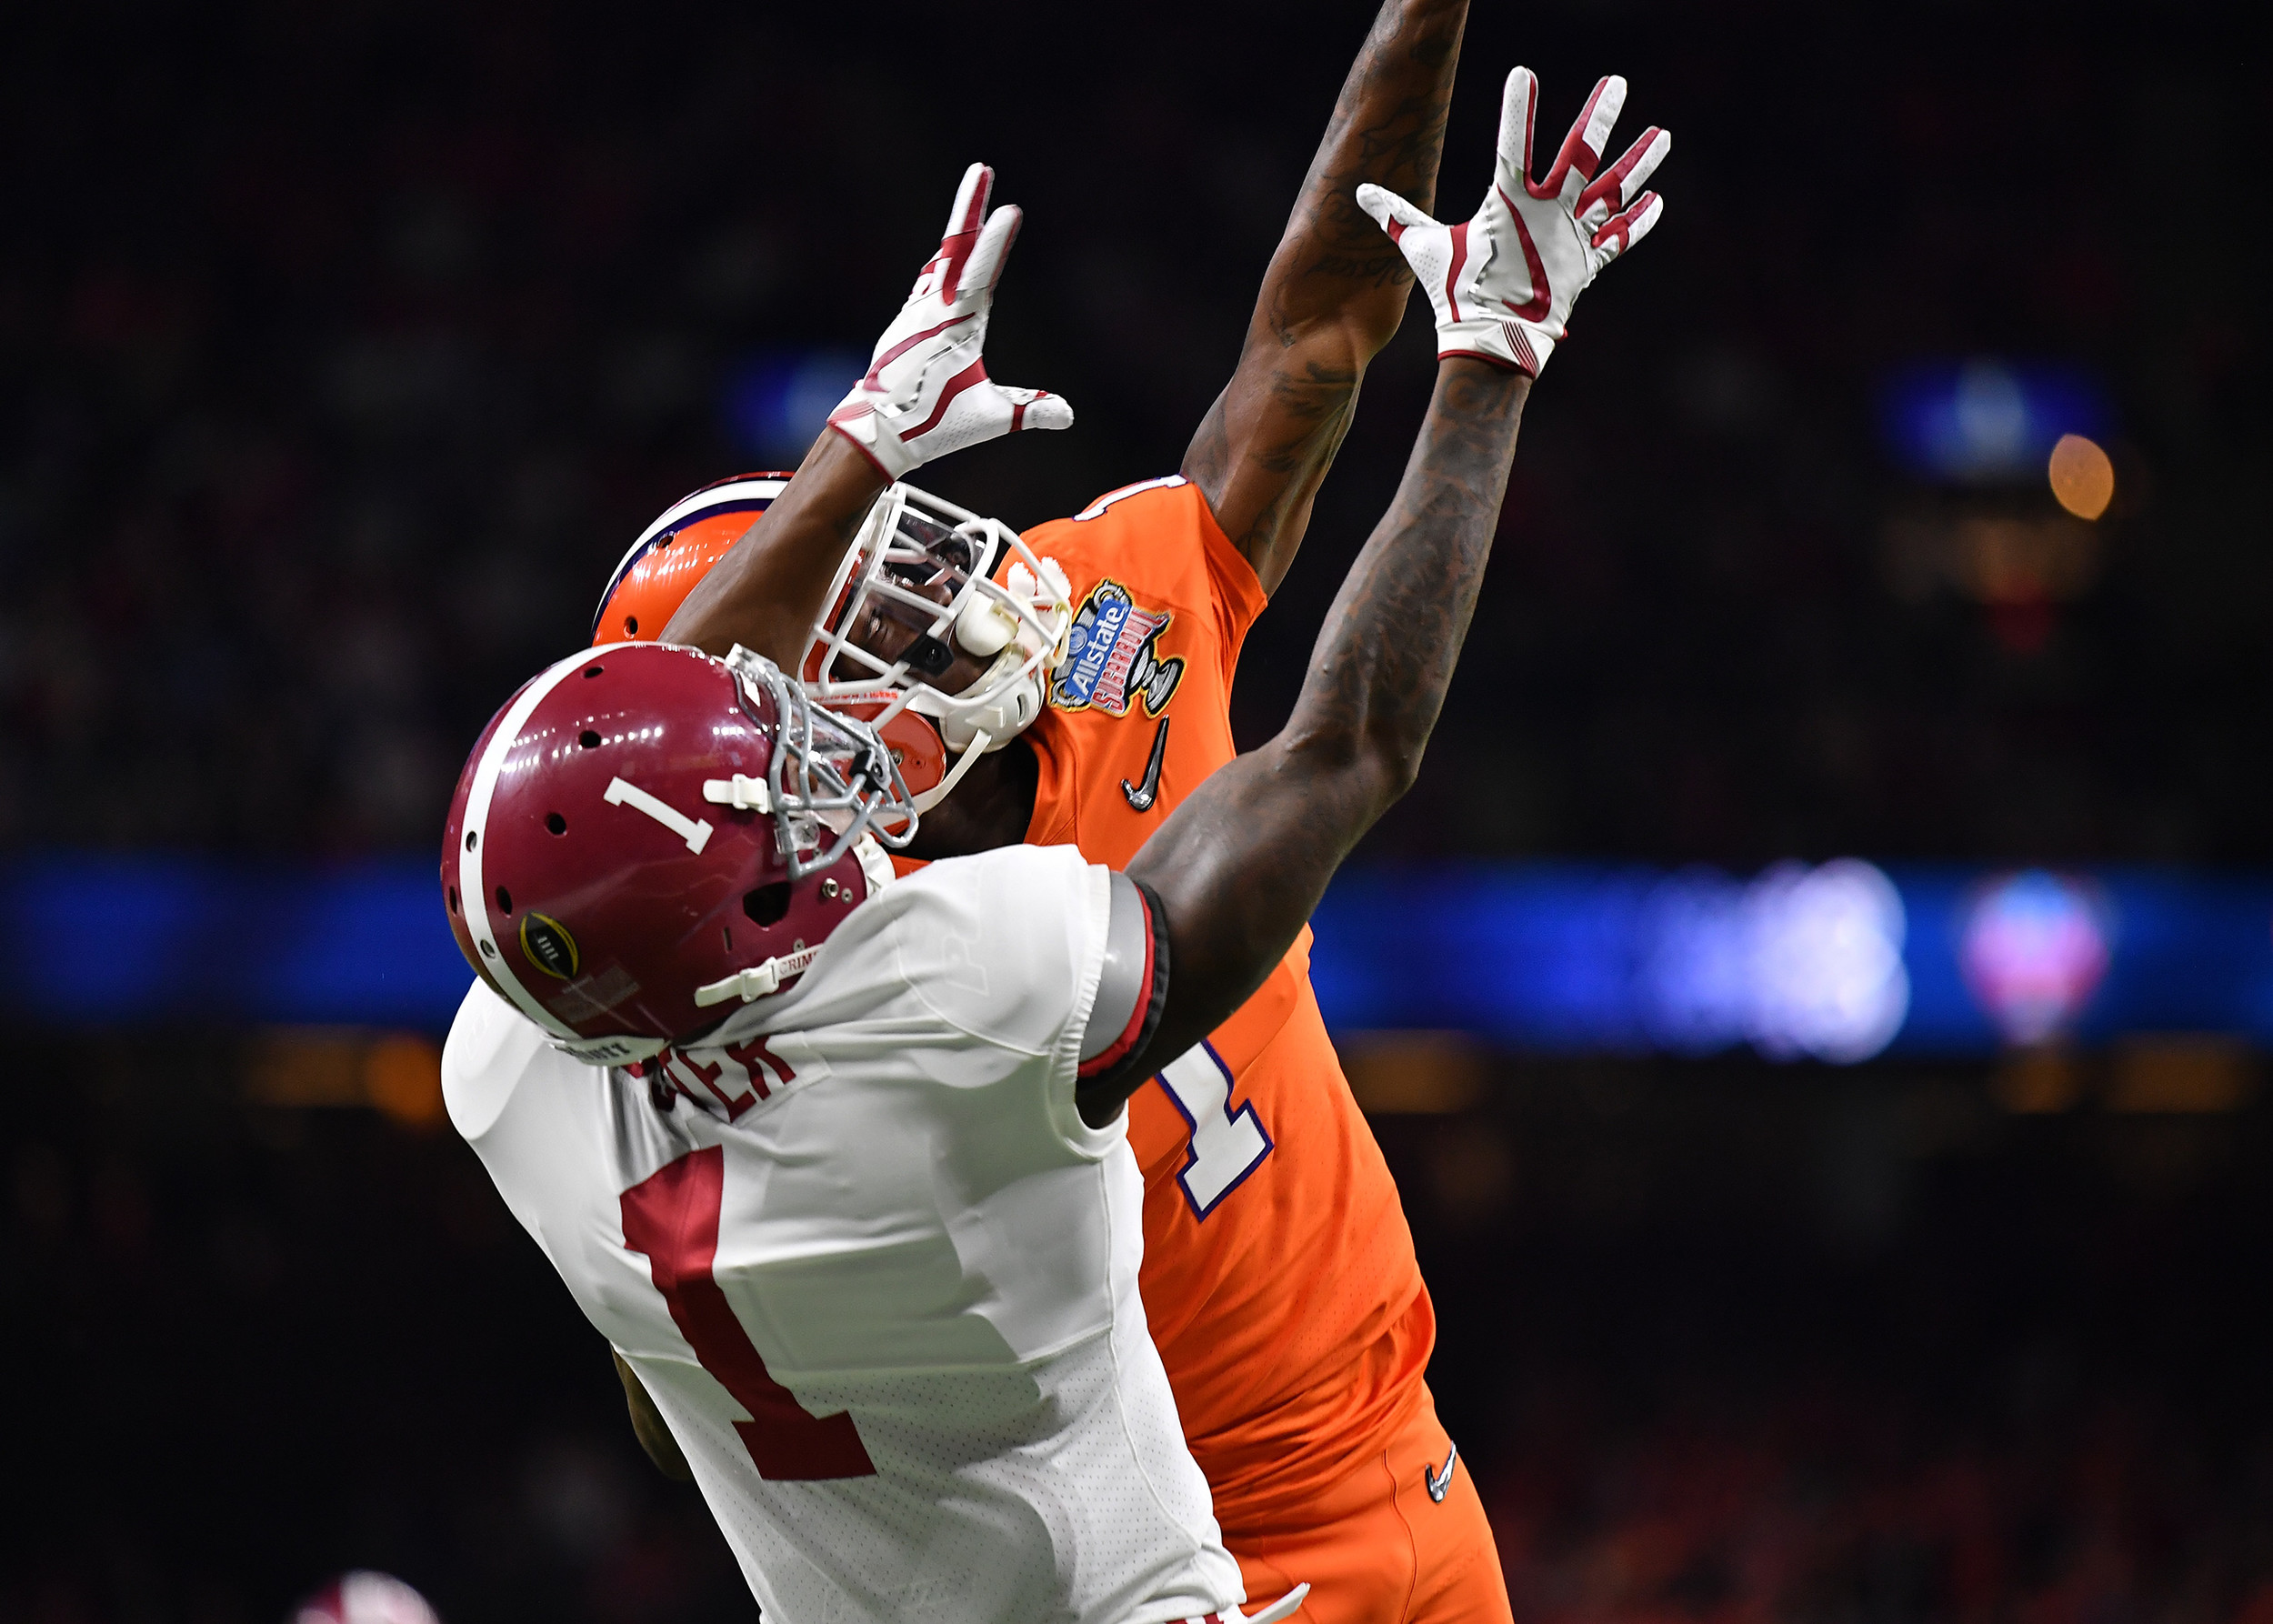 Alabama Crimson Tide wide receiver Robert Foster (1) goes up for a catch in the first half of the 2018 AllState Sugar Bowl on Jan. 1, 2018, at the Mercedes-Benz SuperDome in New Orleans, La. Alabama won the game 24-6. (Photo by Lee Walls)